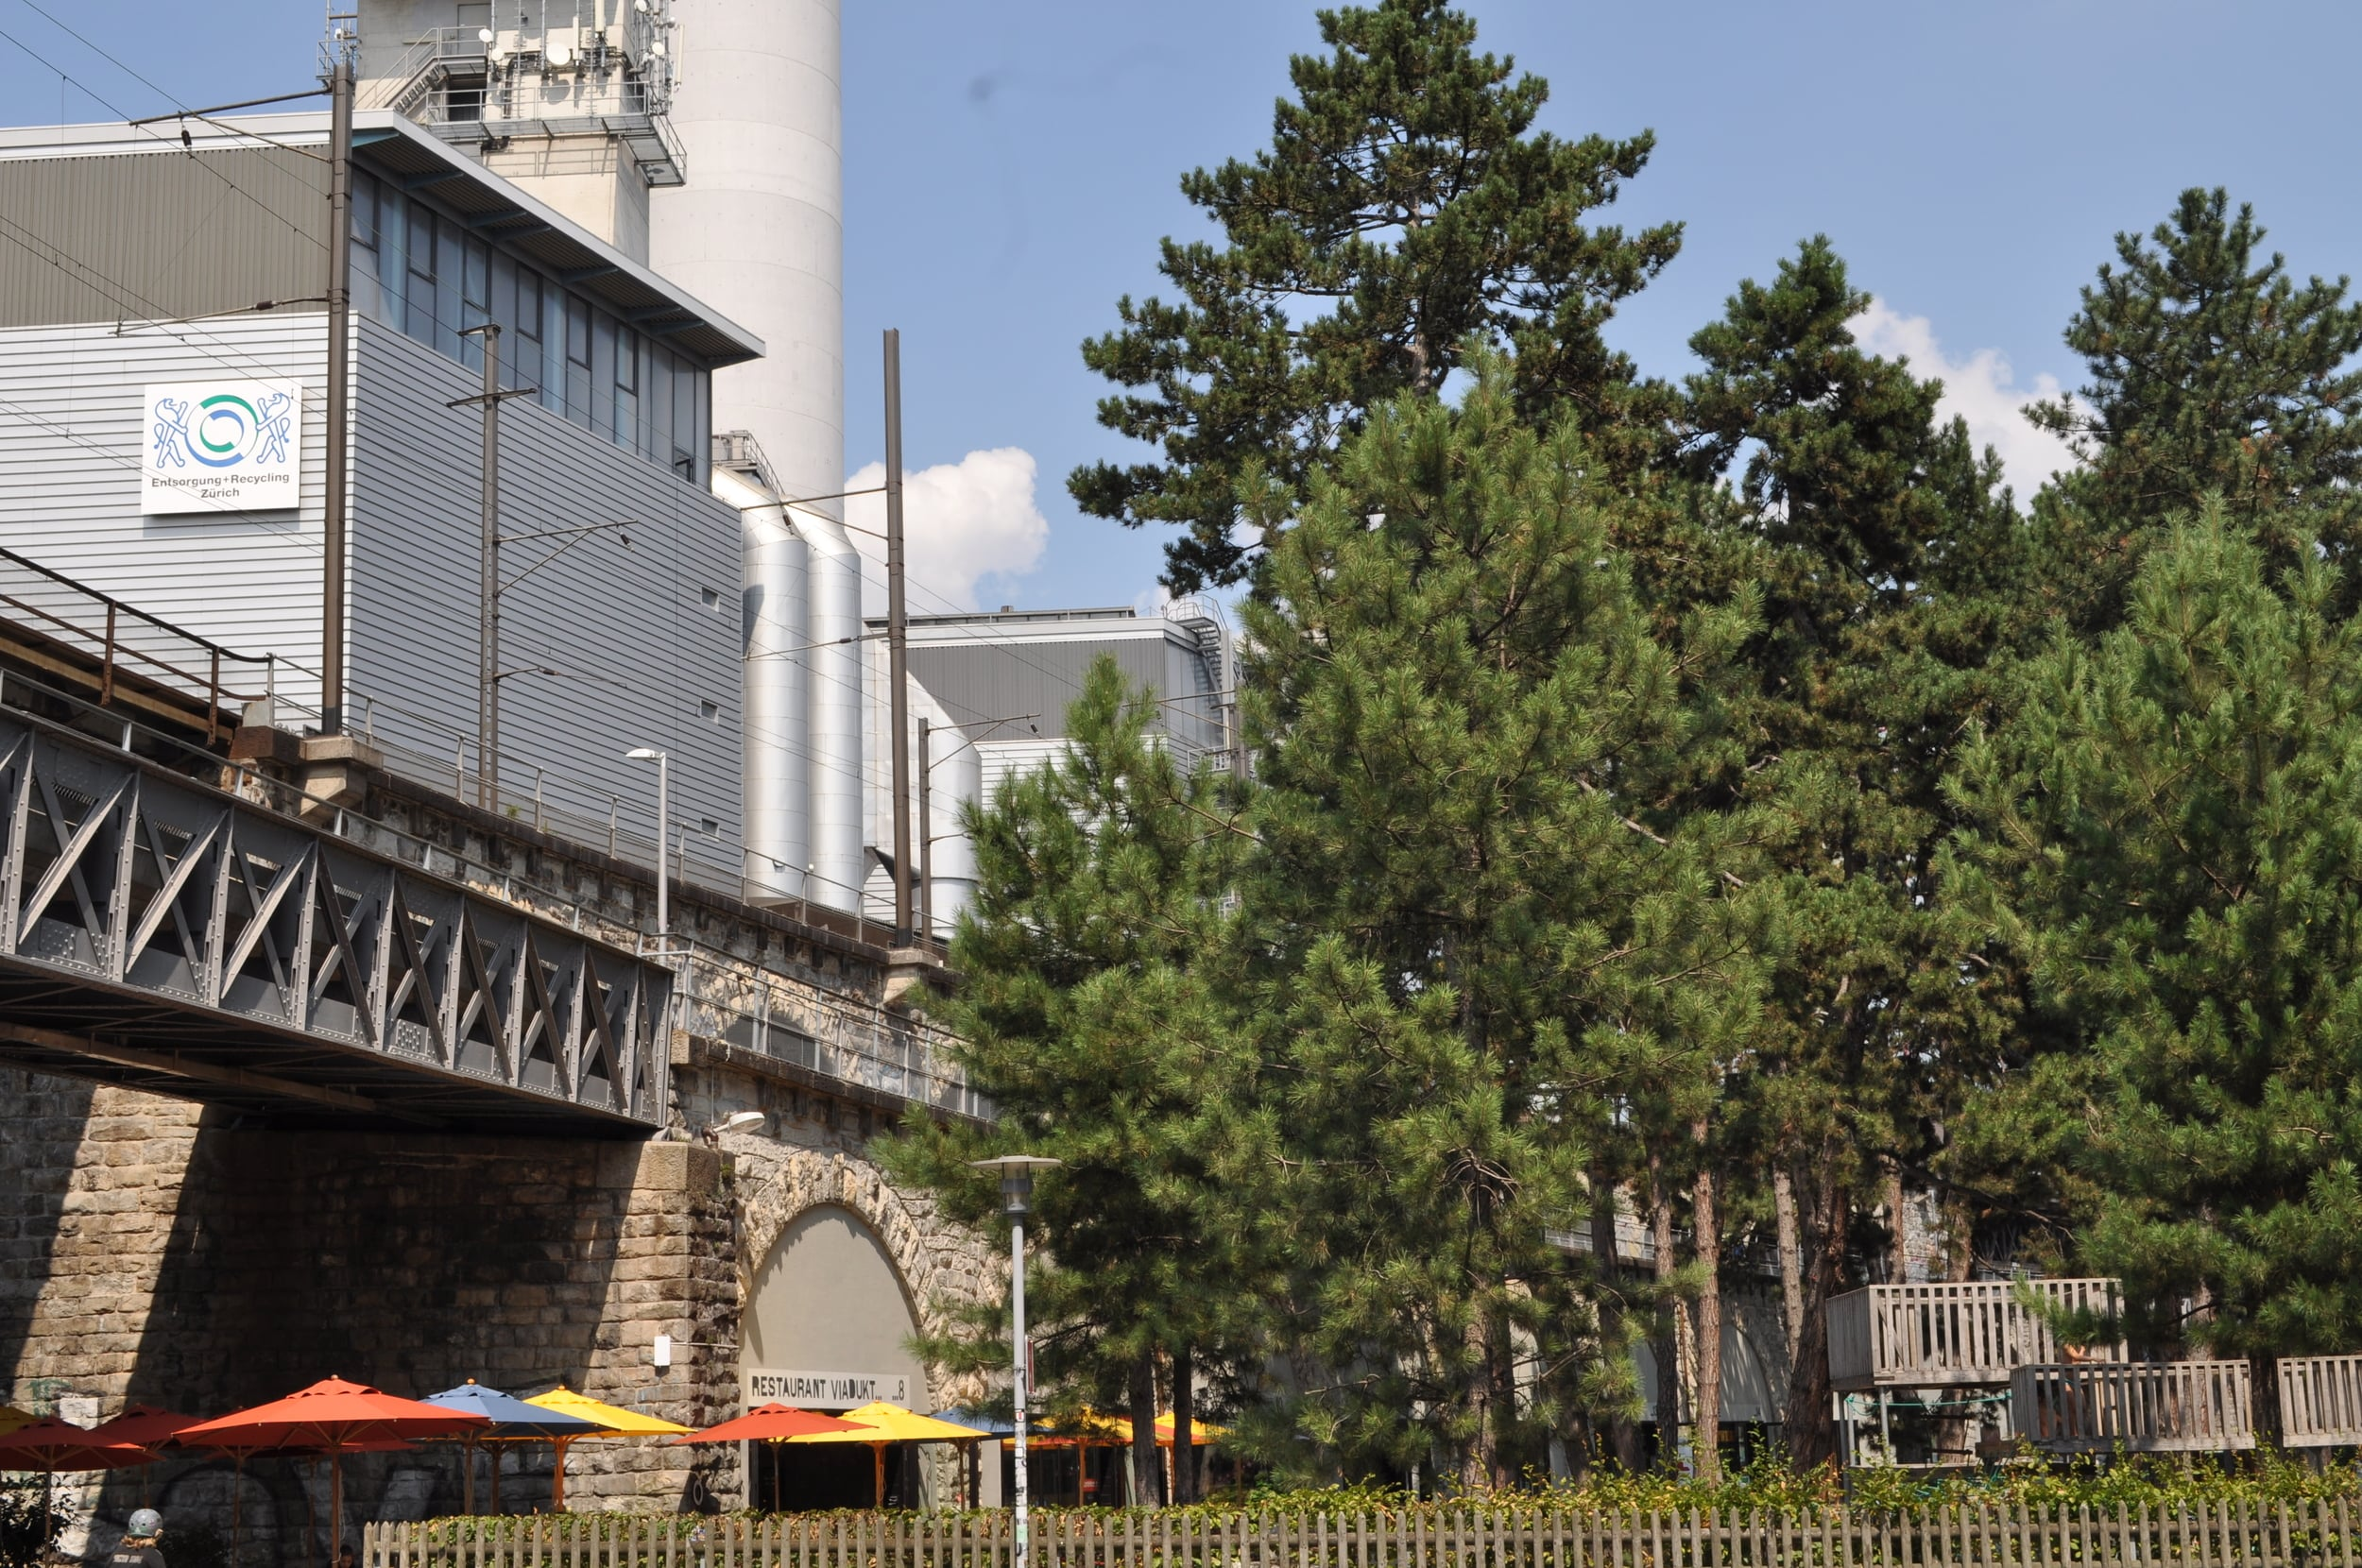 Behind the Josefswiese Park and several restaurants is a waste to energy plant. Photo: Pamy Rojas